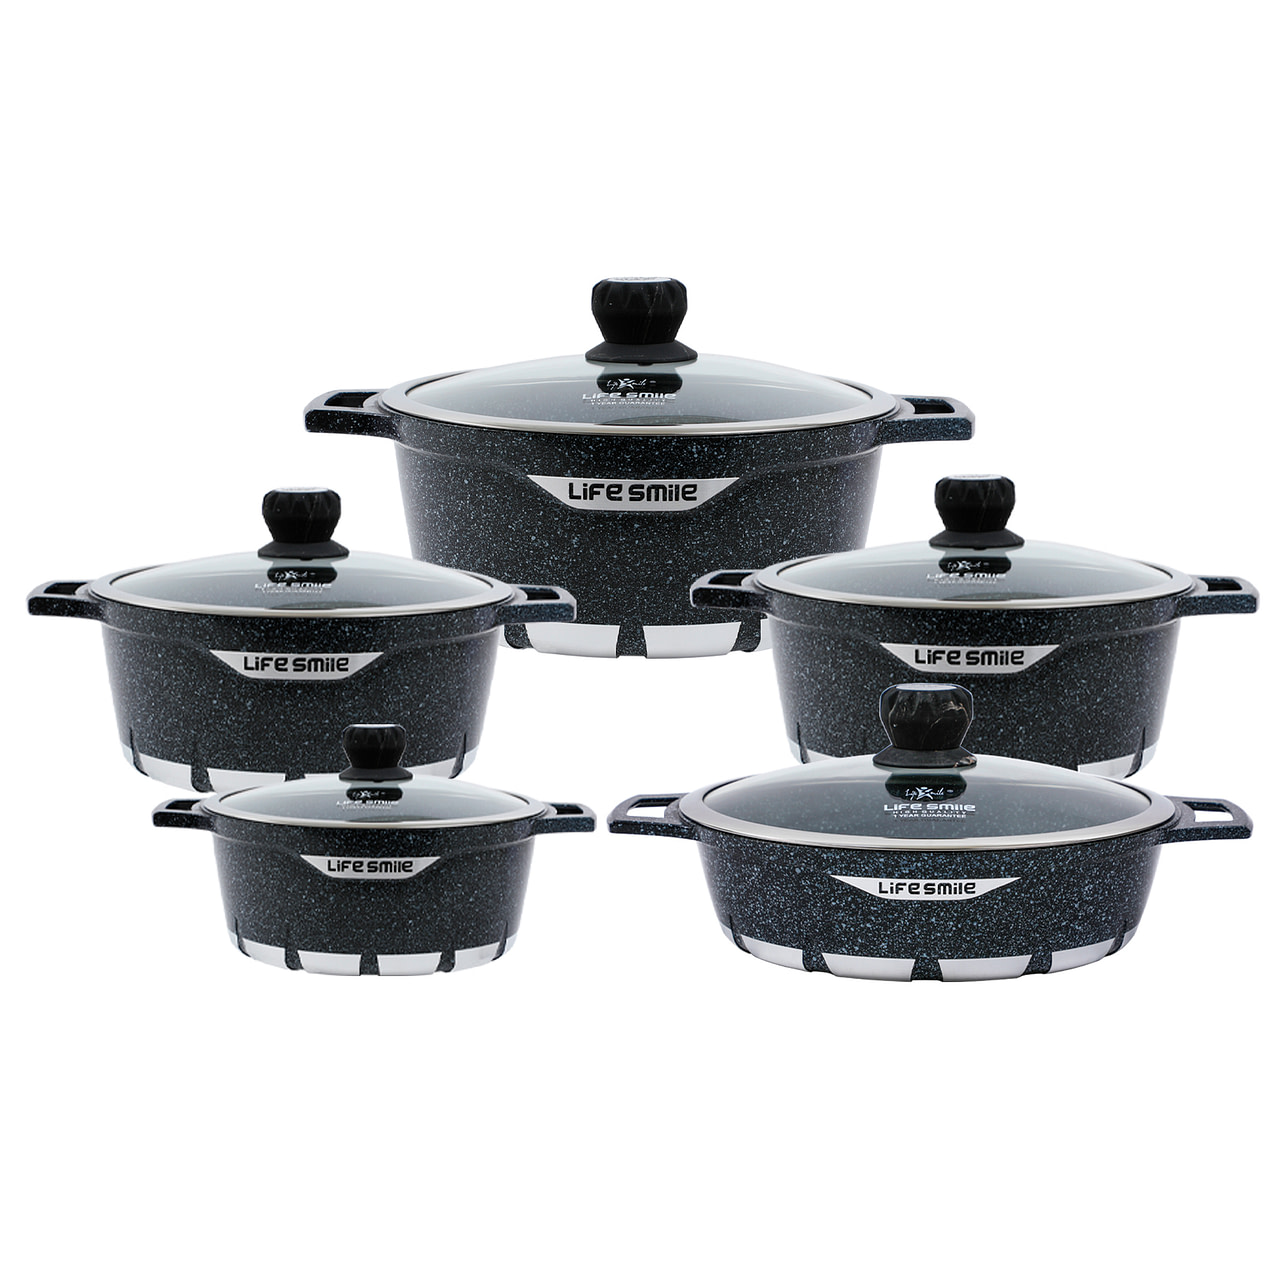 Life Smile 10PCS Cookware Set with Granite Coating